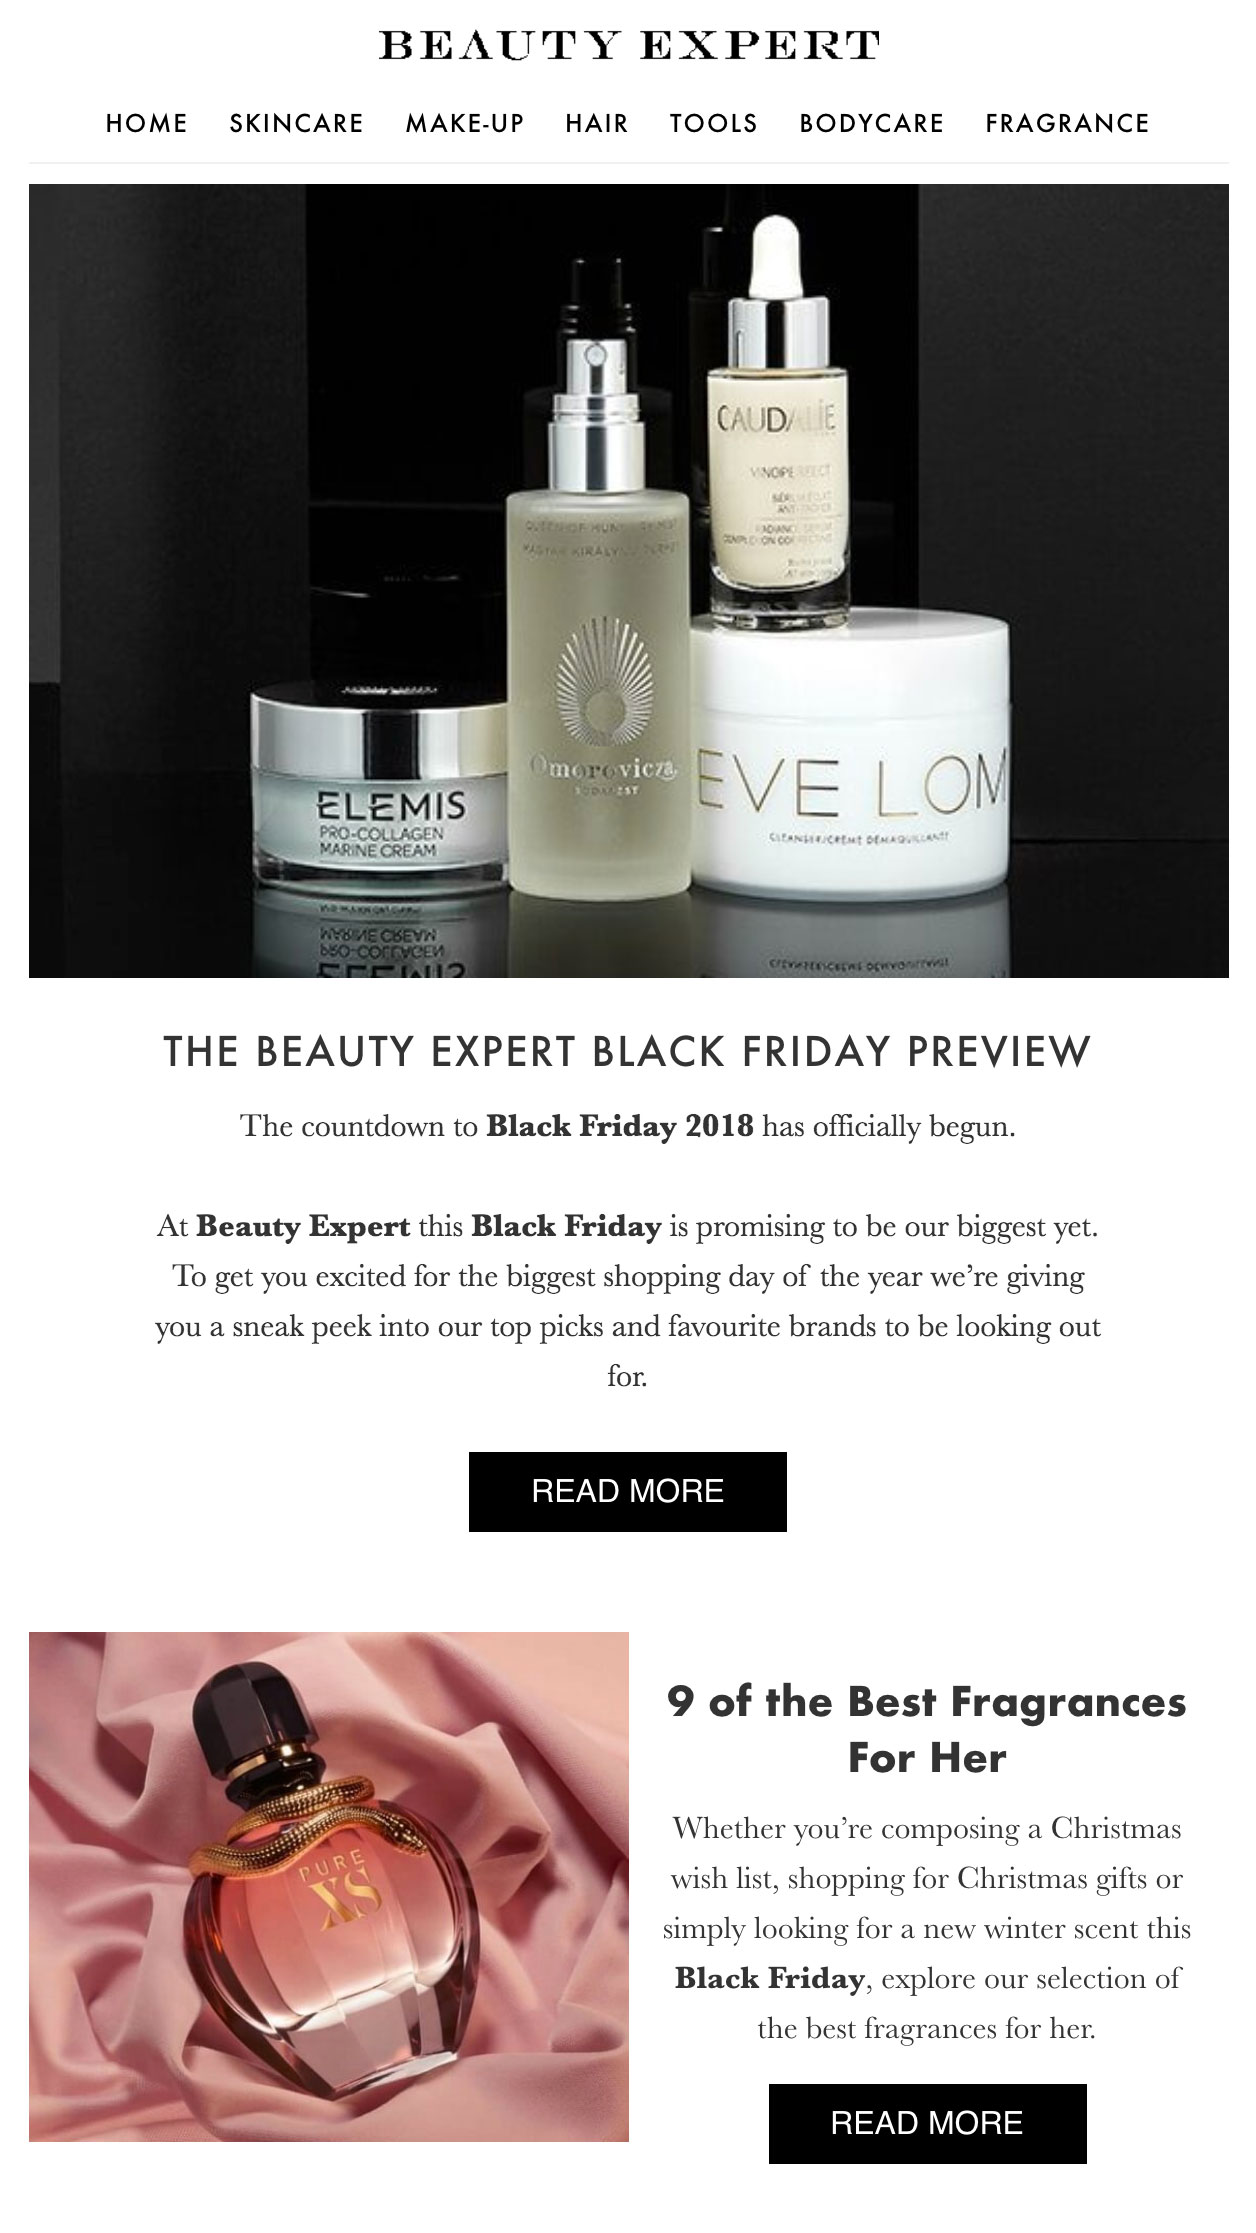 Beauty Expert's Black Friday preview.